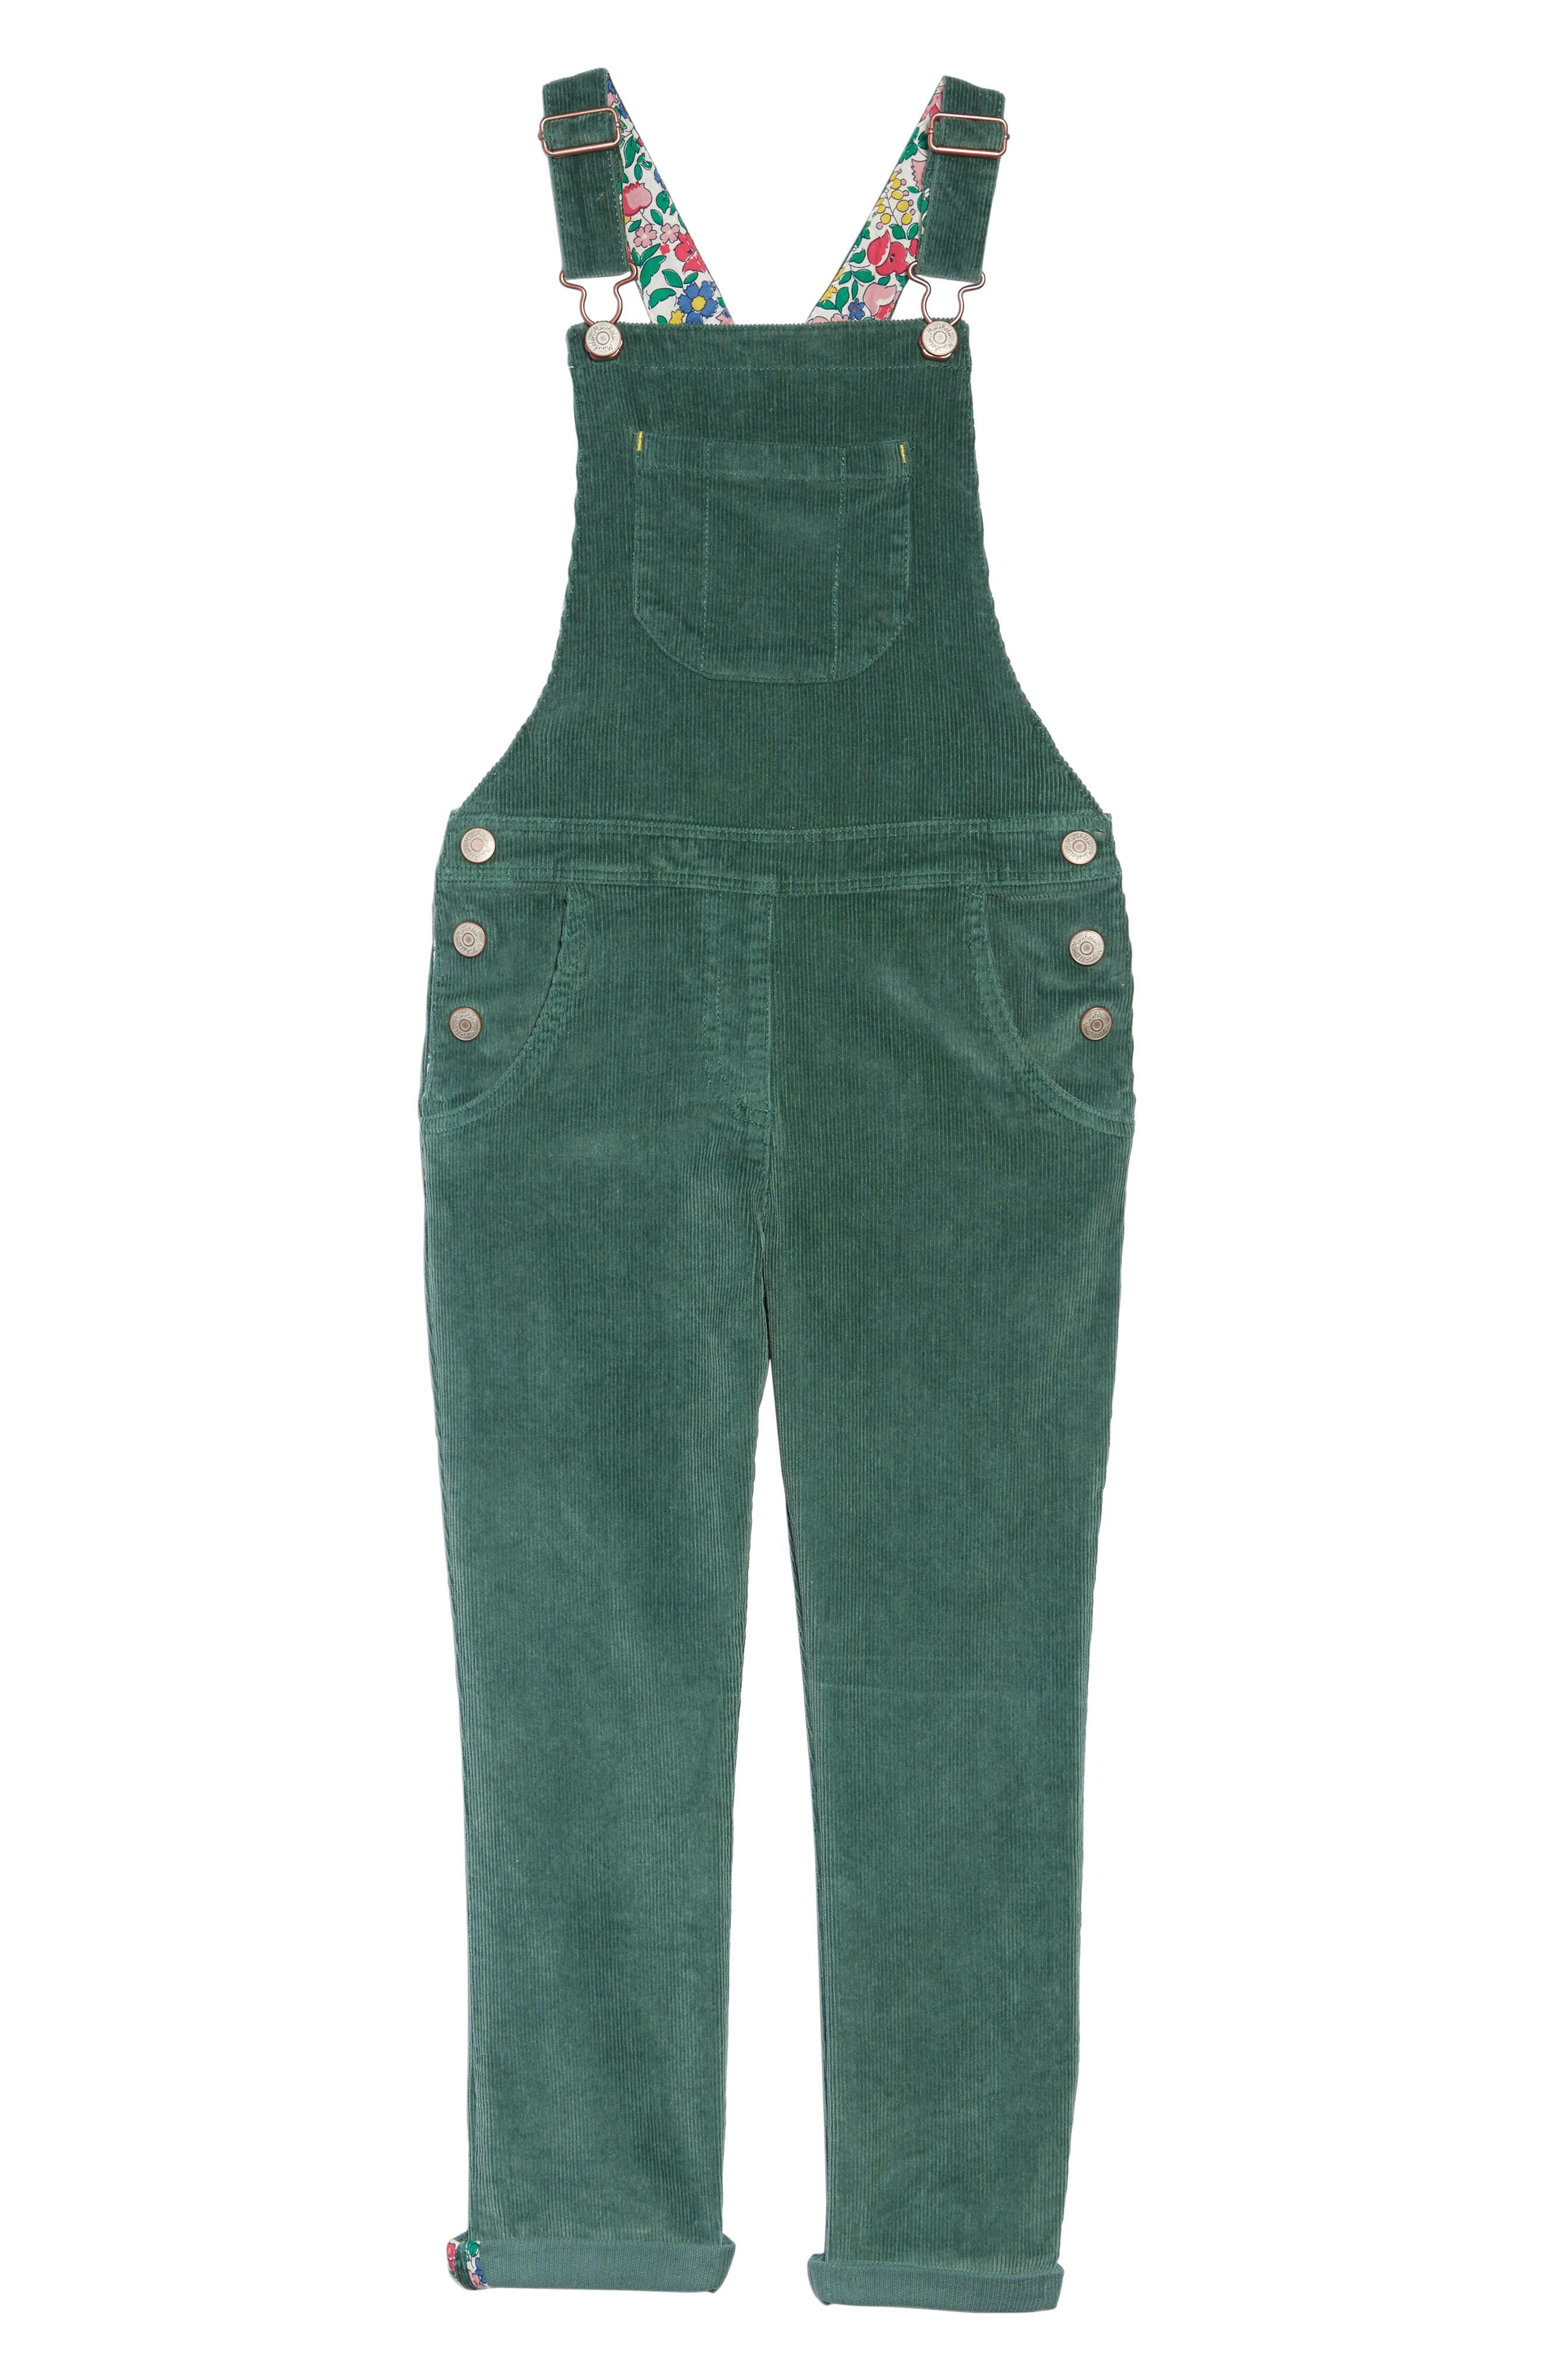 Embroidered Dungaree Overalls,                         Main,                         color, 315